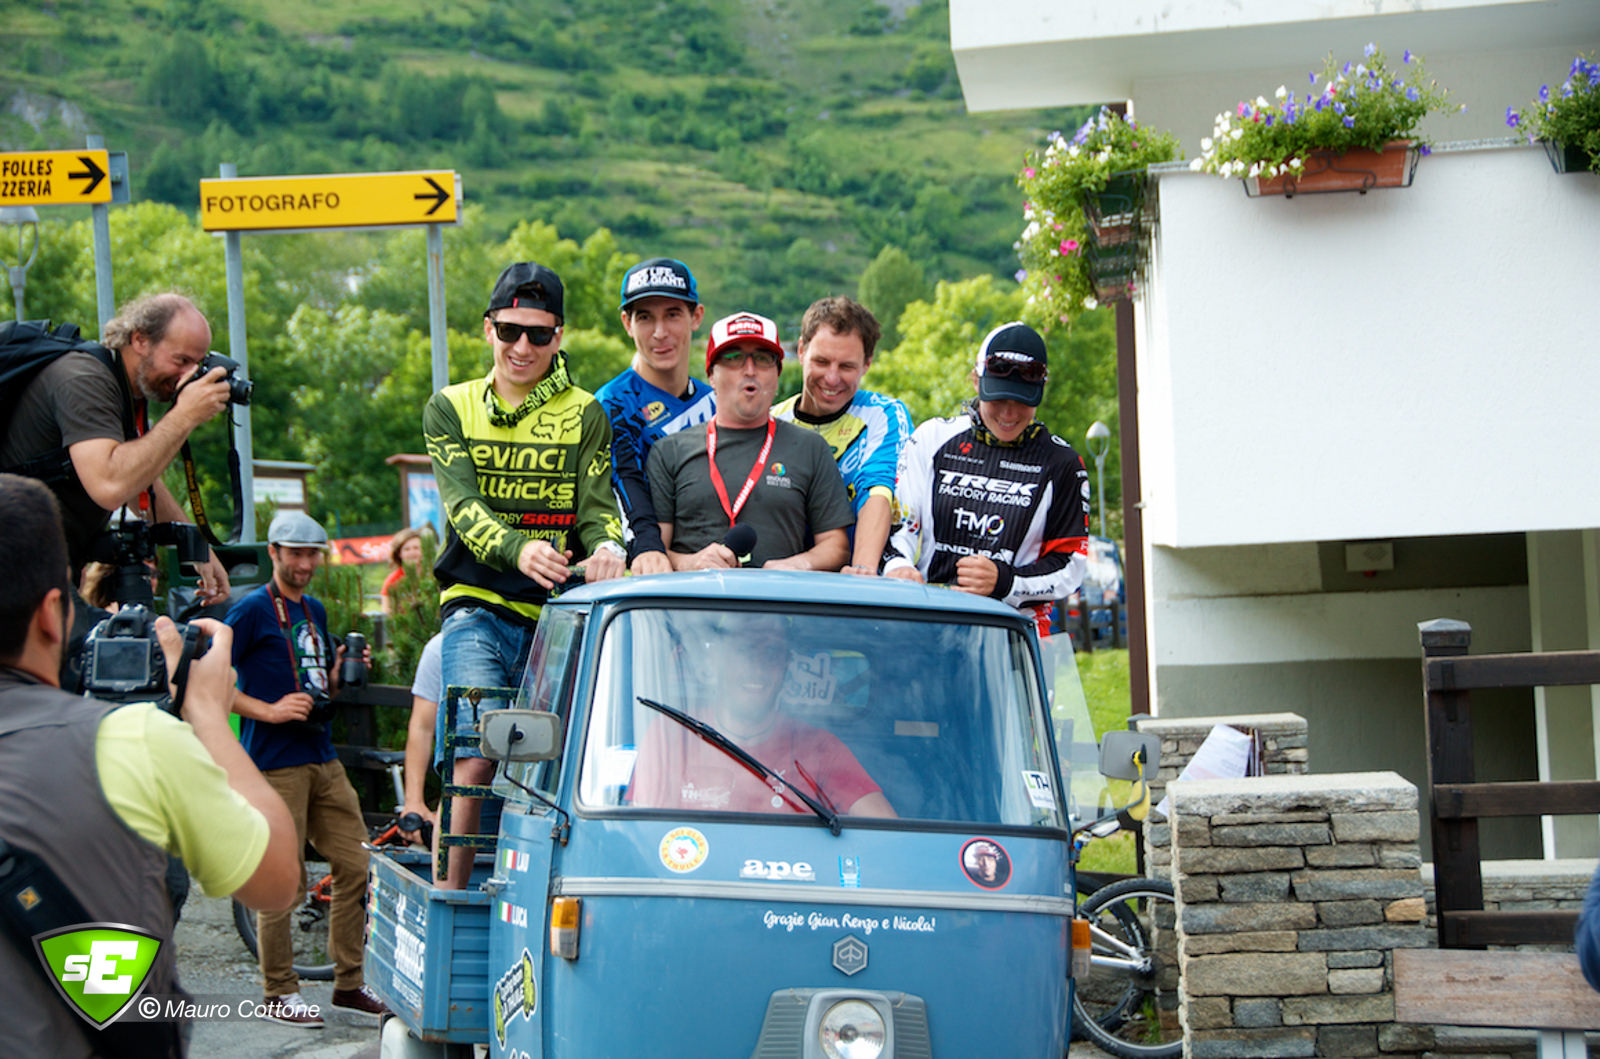 The godfather of Enduro takes the catergory winners on an APE tour of La Thuile.